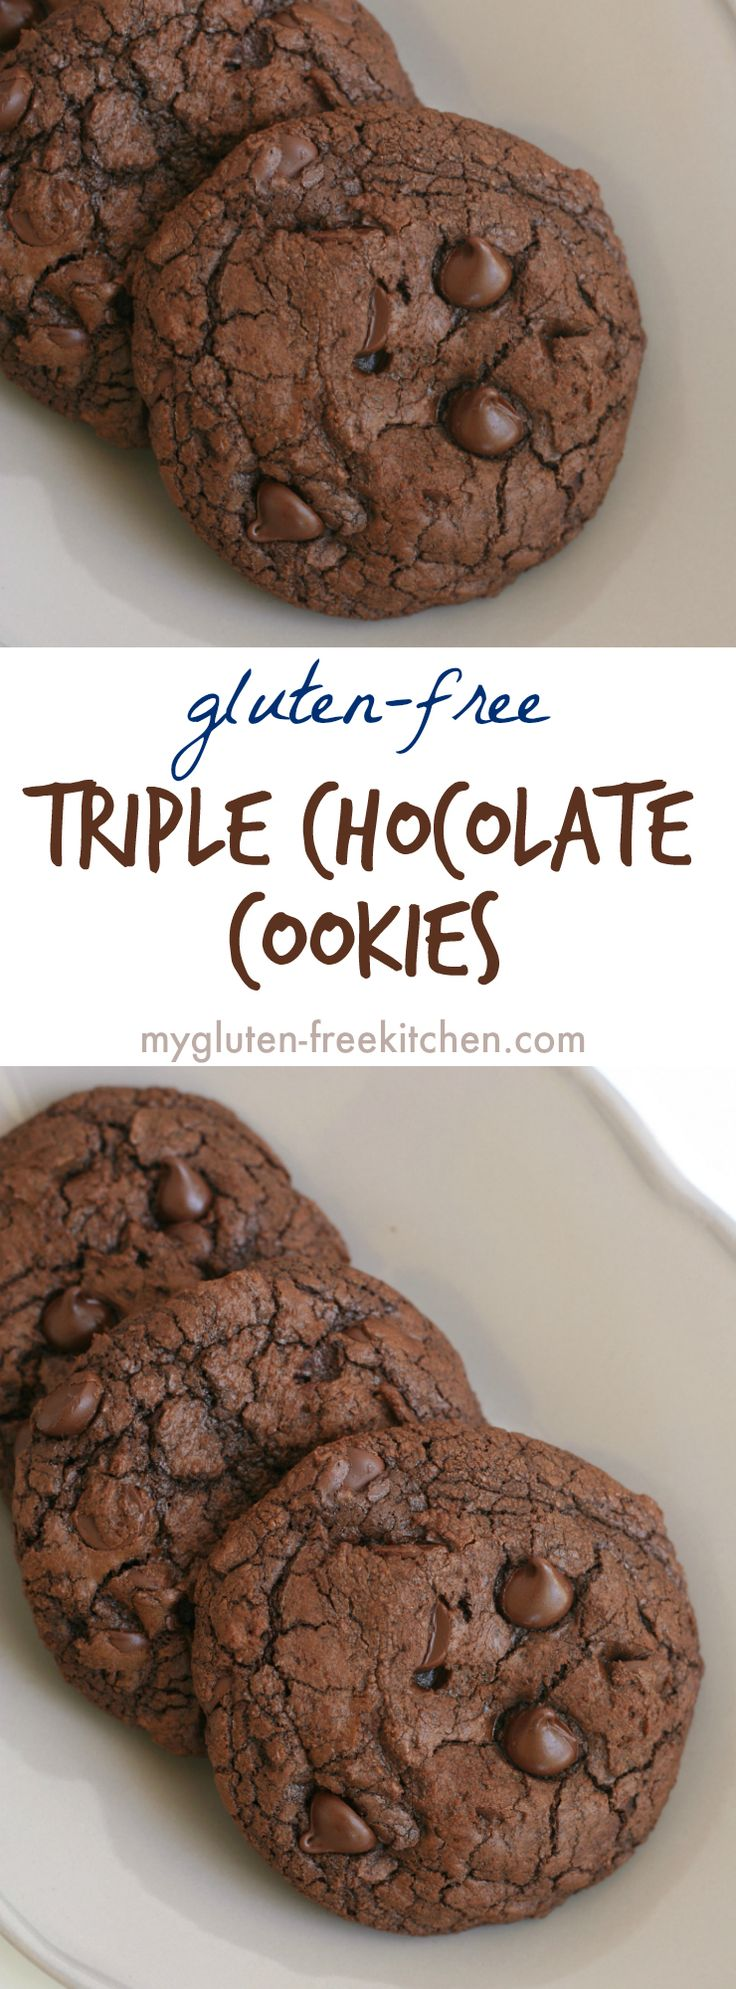 Gluten-free Triple Chocolate Cookies Recipe